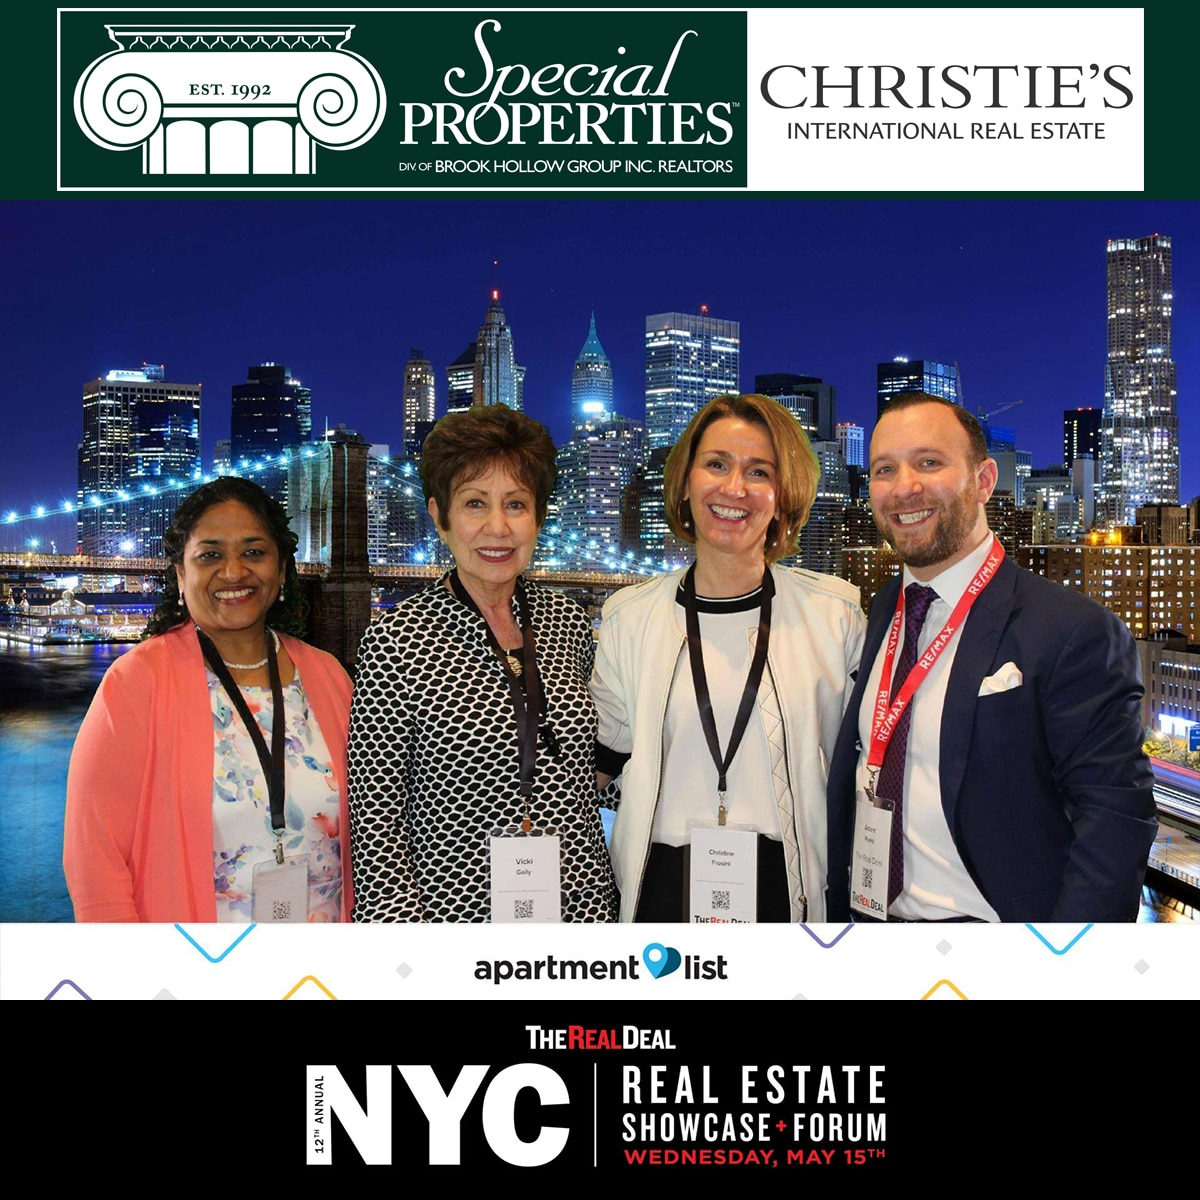 15ad2923 We attended The Real Deal 12th Annual NYC Real Estate Showcase & Forum  today and enjoyed listening to the Real Estate greats discuss industry  trends and the ...